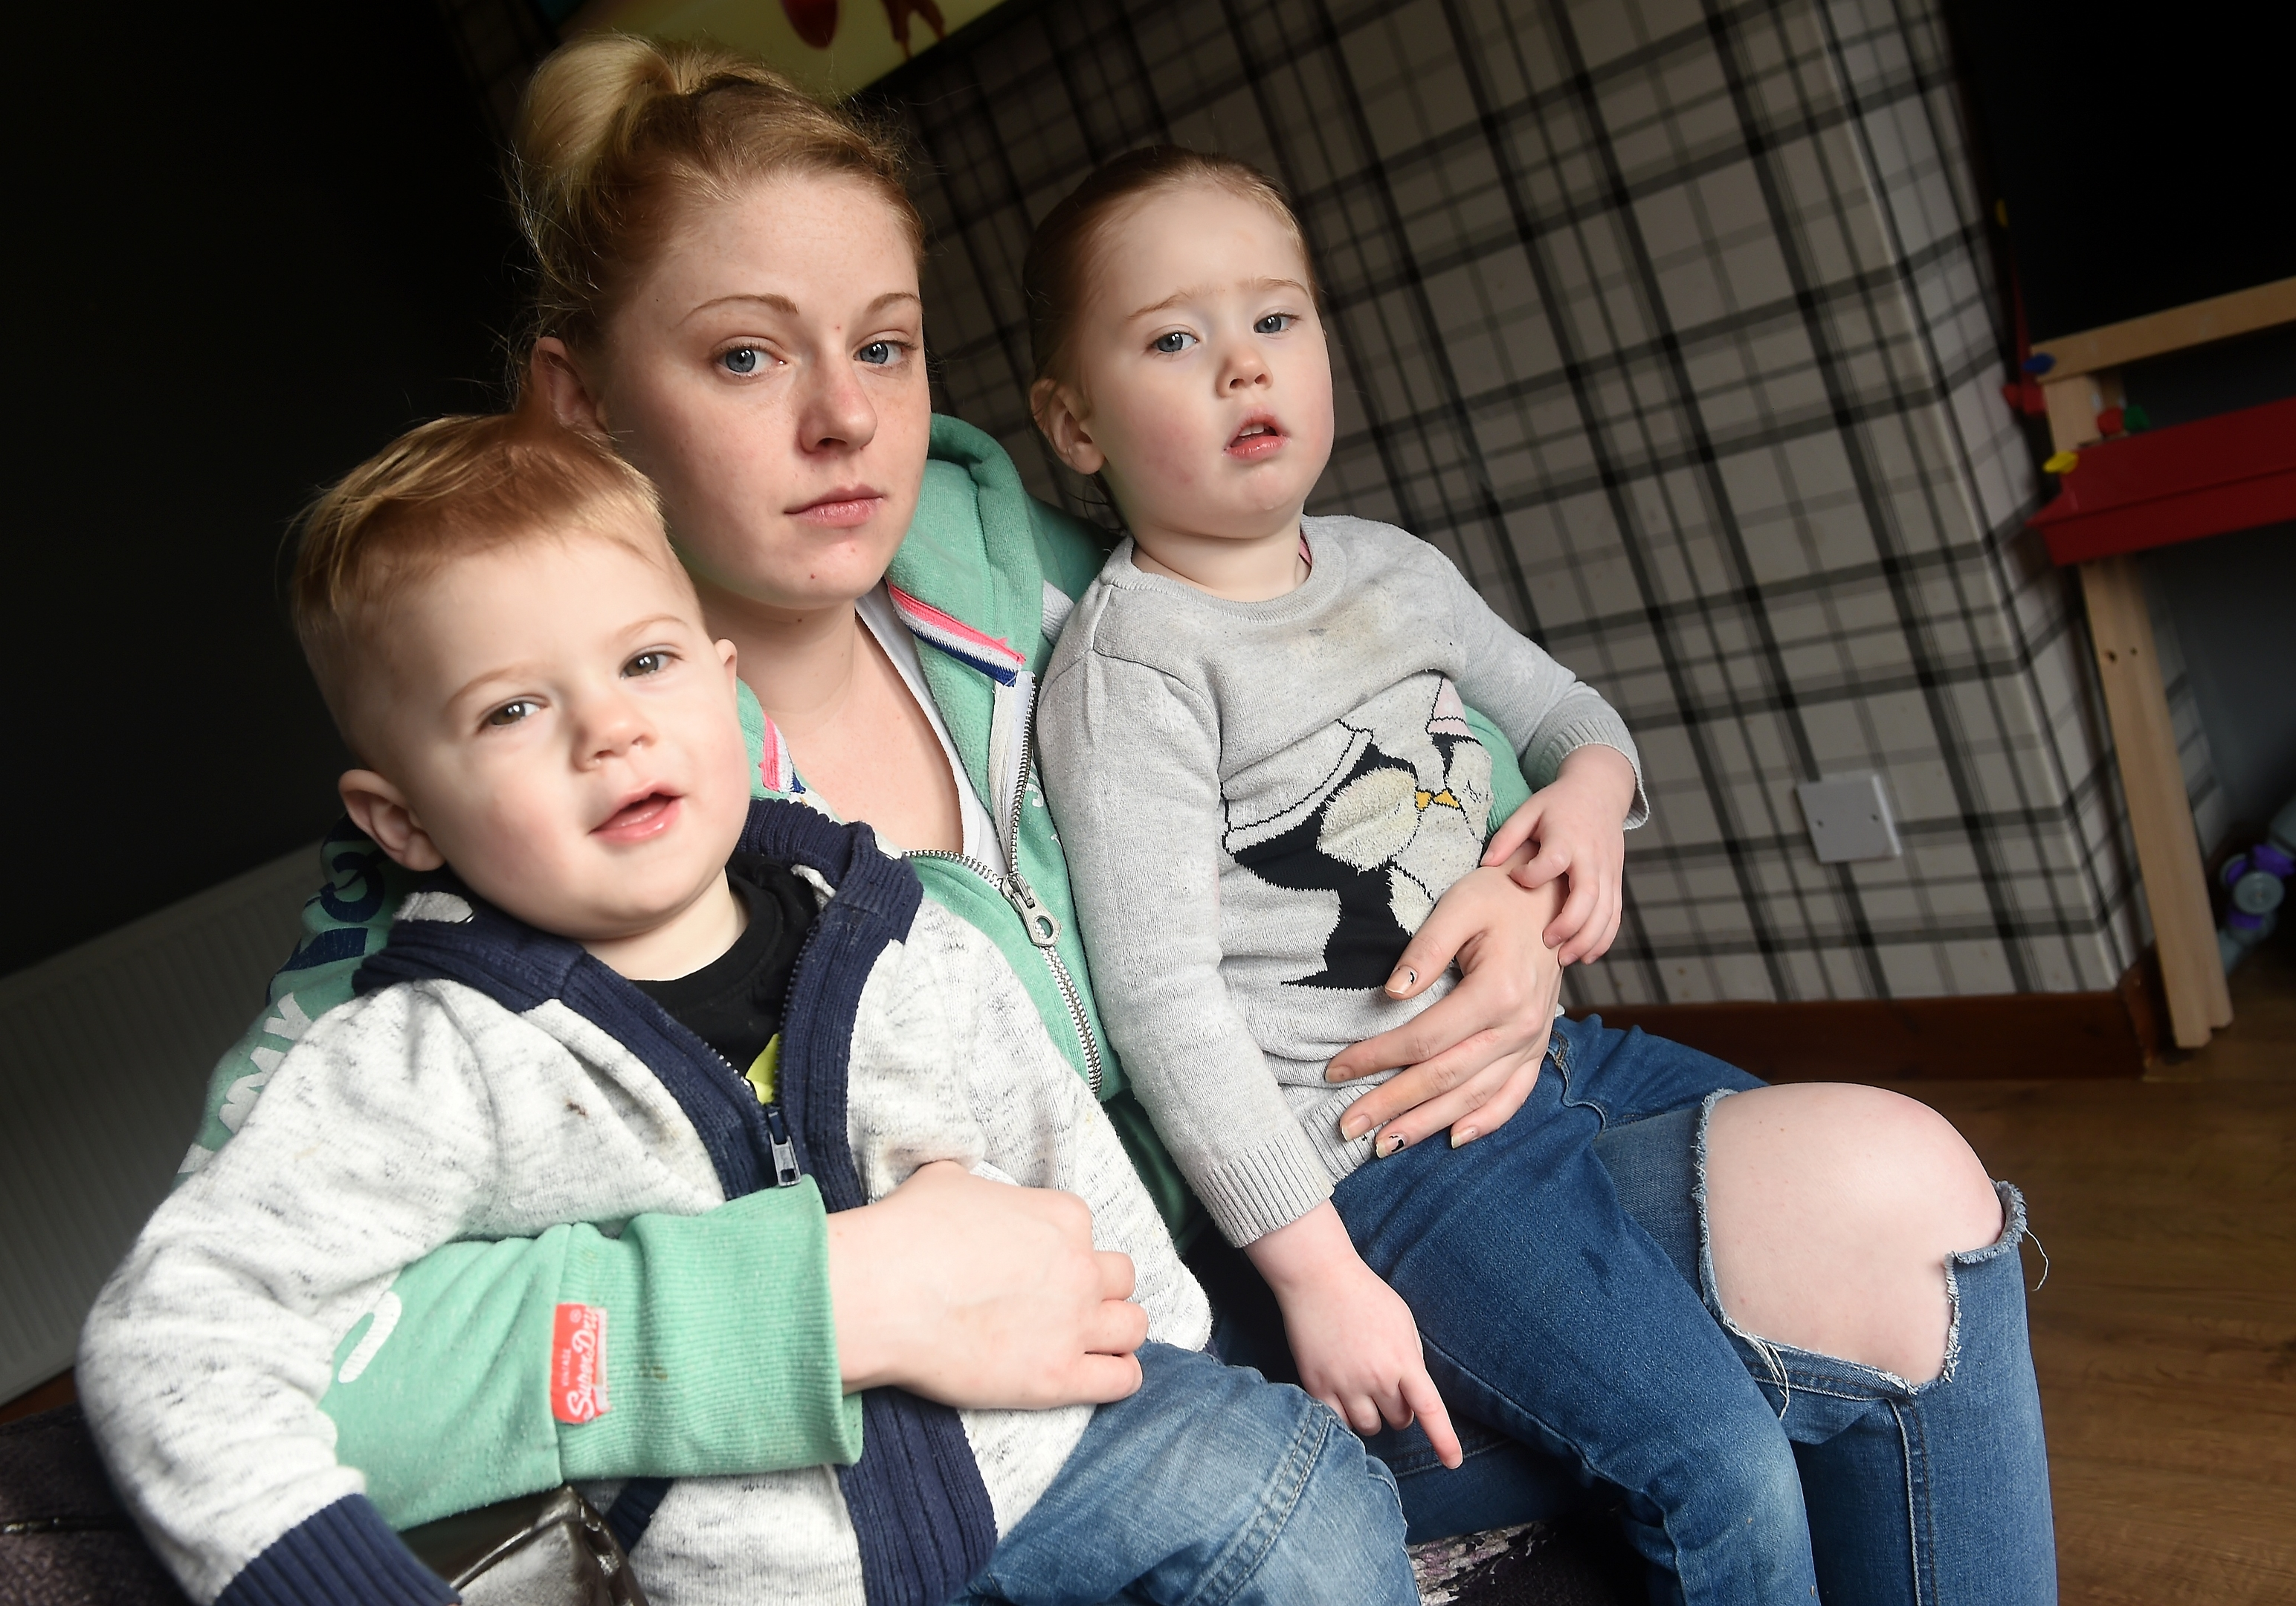 Rachael Grant with her two children Zander (1) and Emily (2).